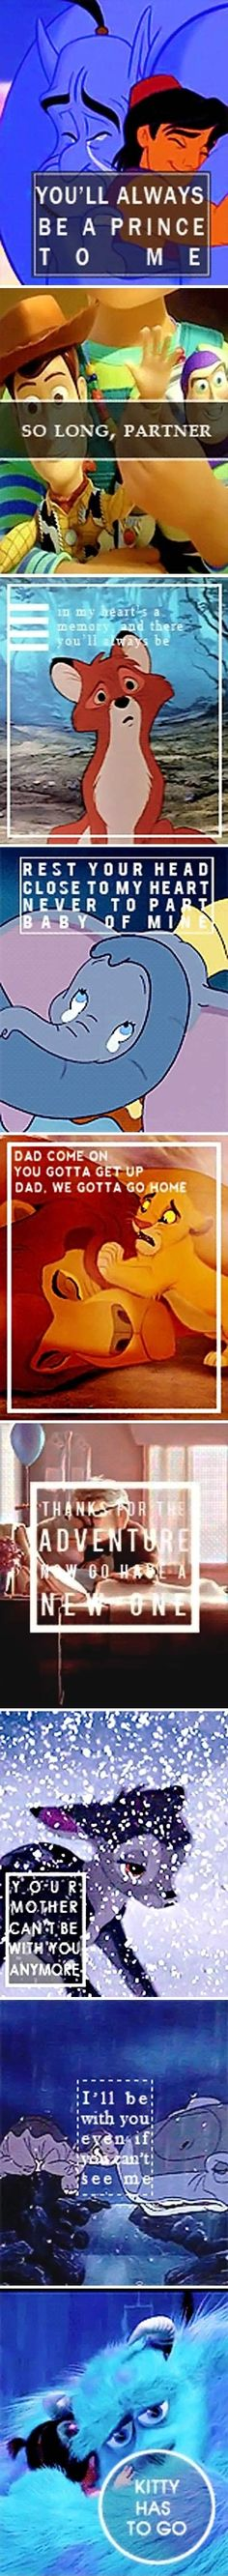 Heartbreaking Disney lines.